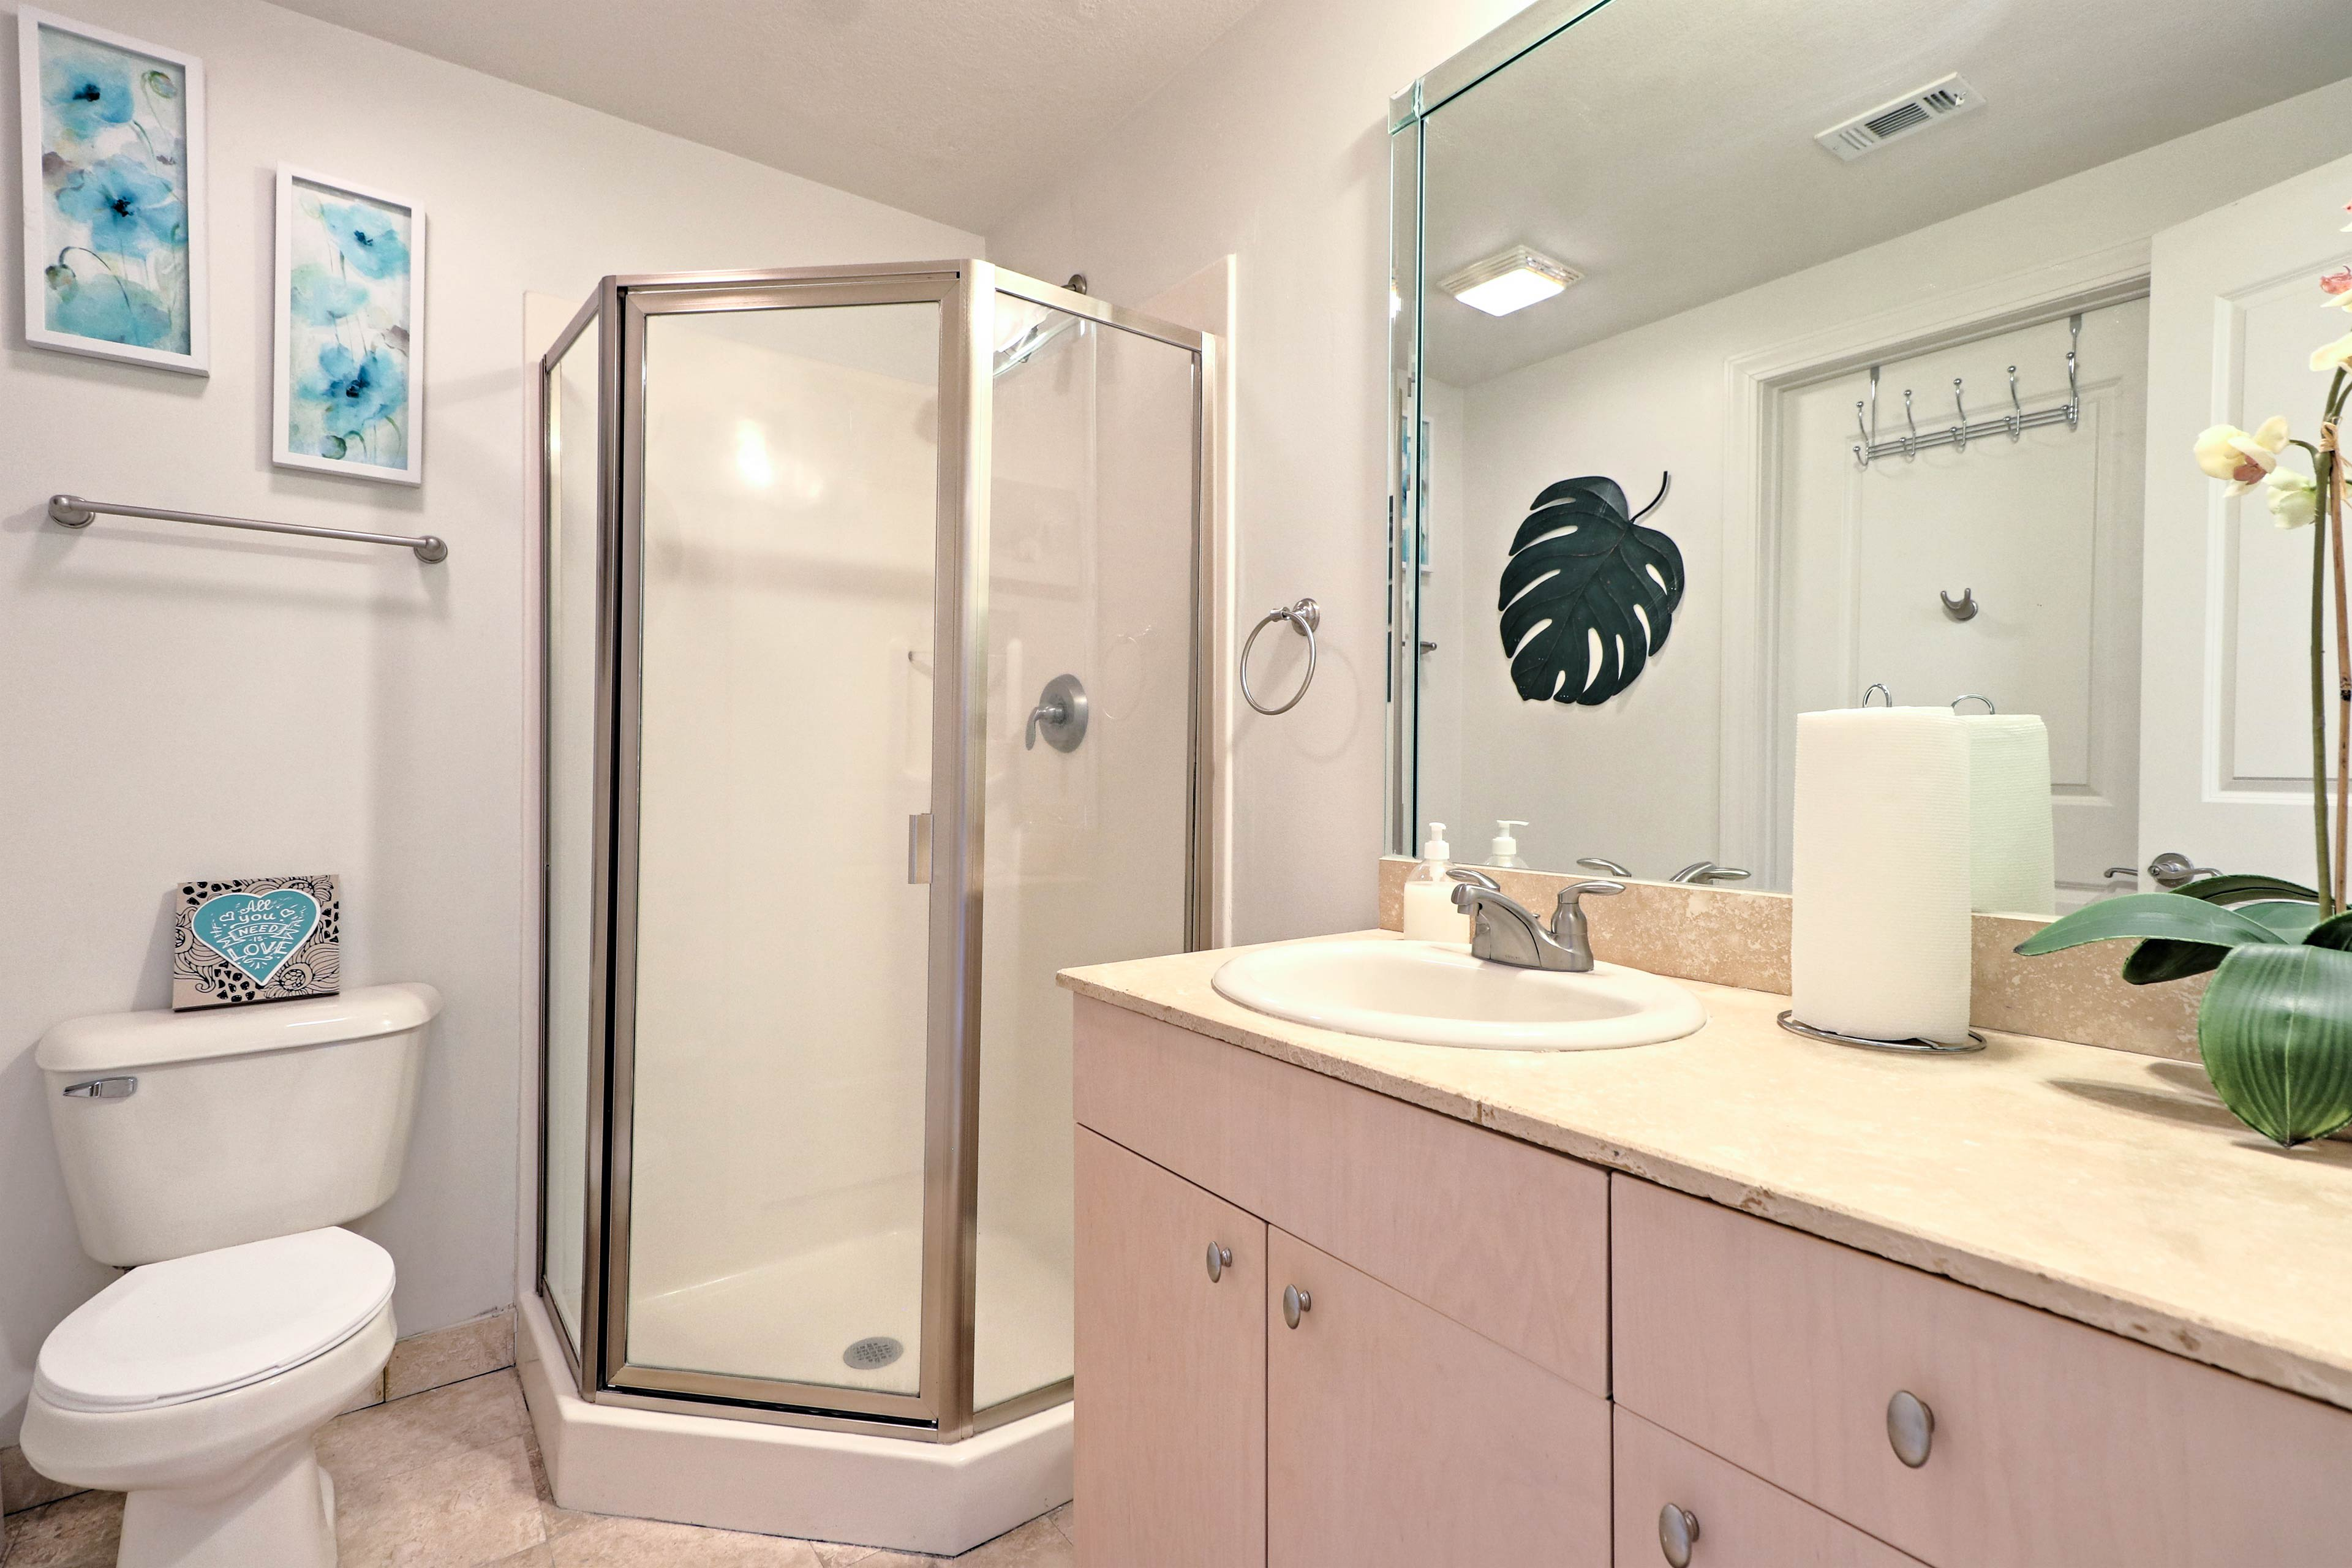 Both bathrooms are stocked with fresh towels for guests' comfort.